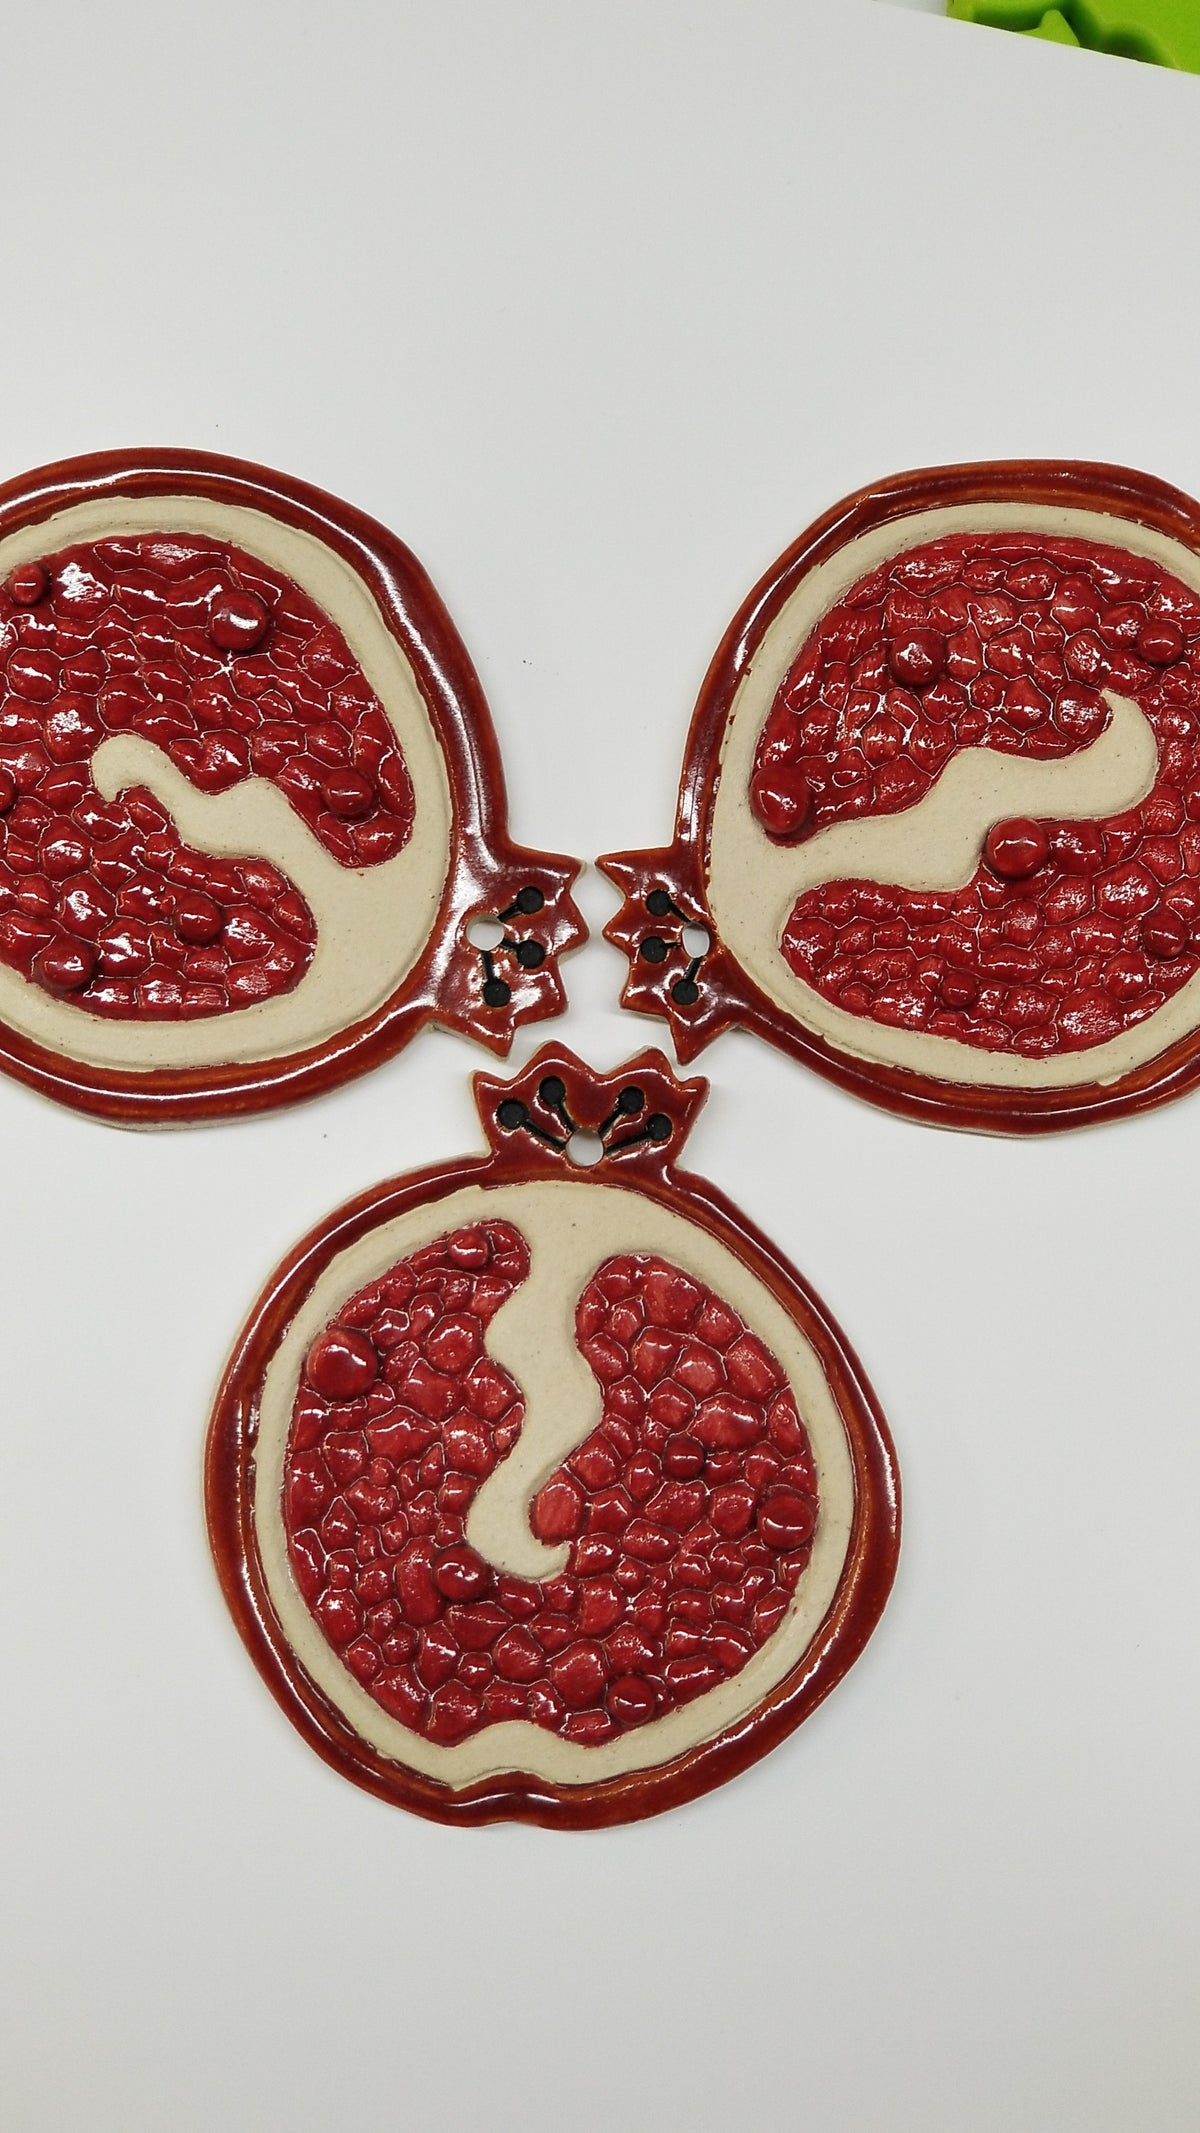 Pomegranate Ornament (2020)